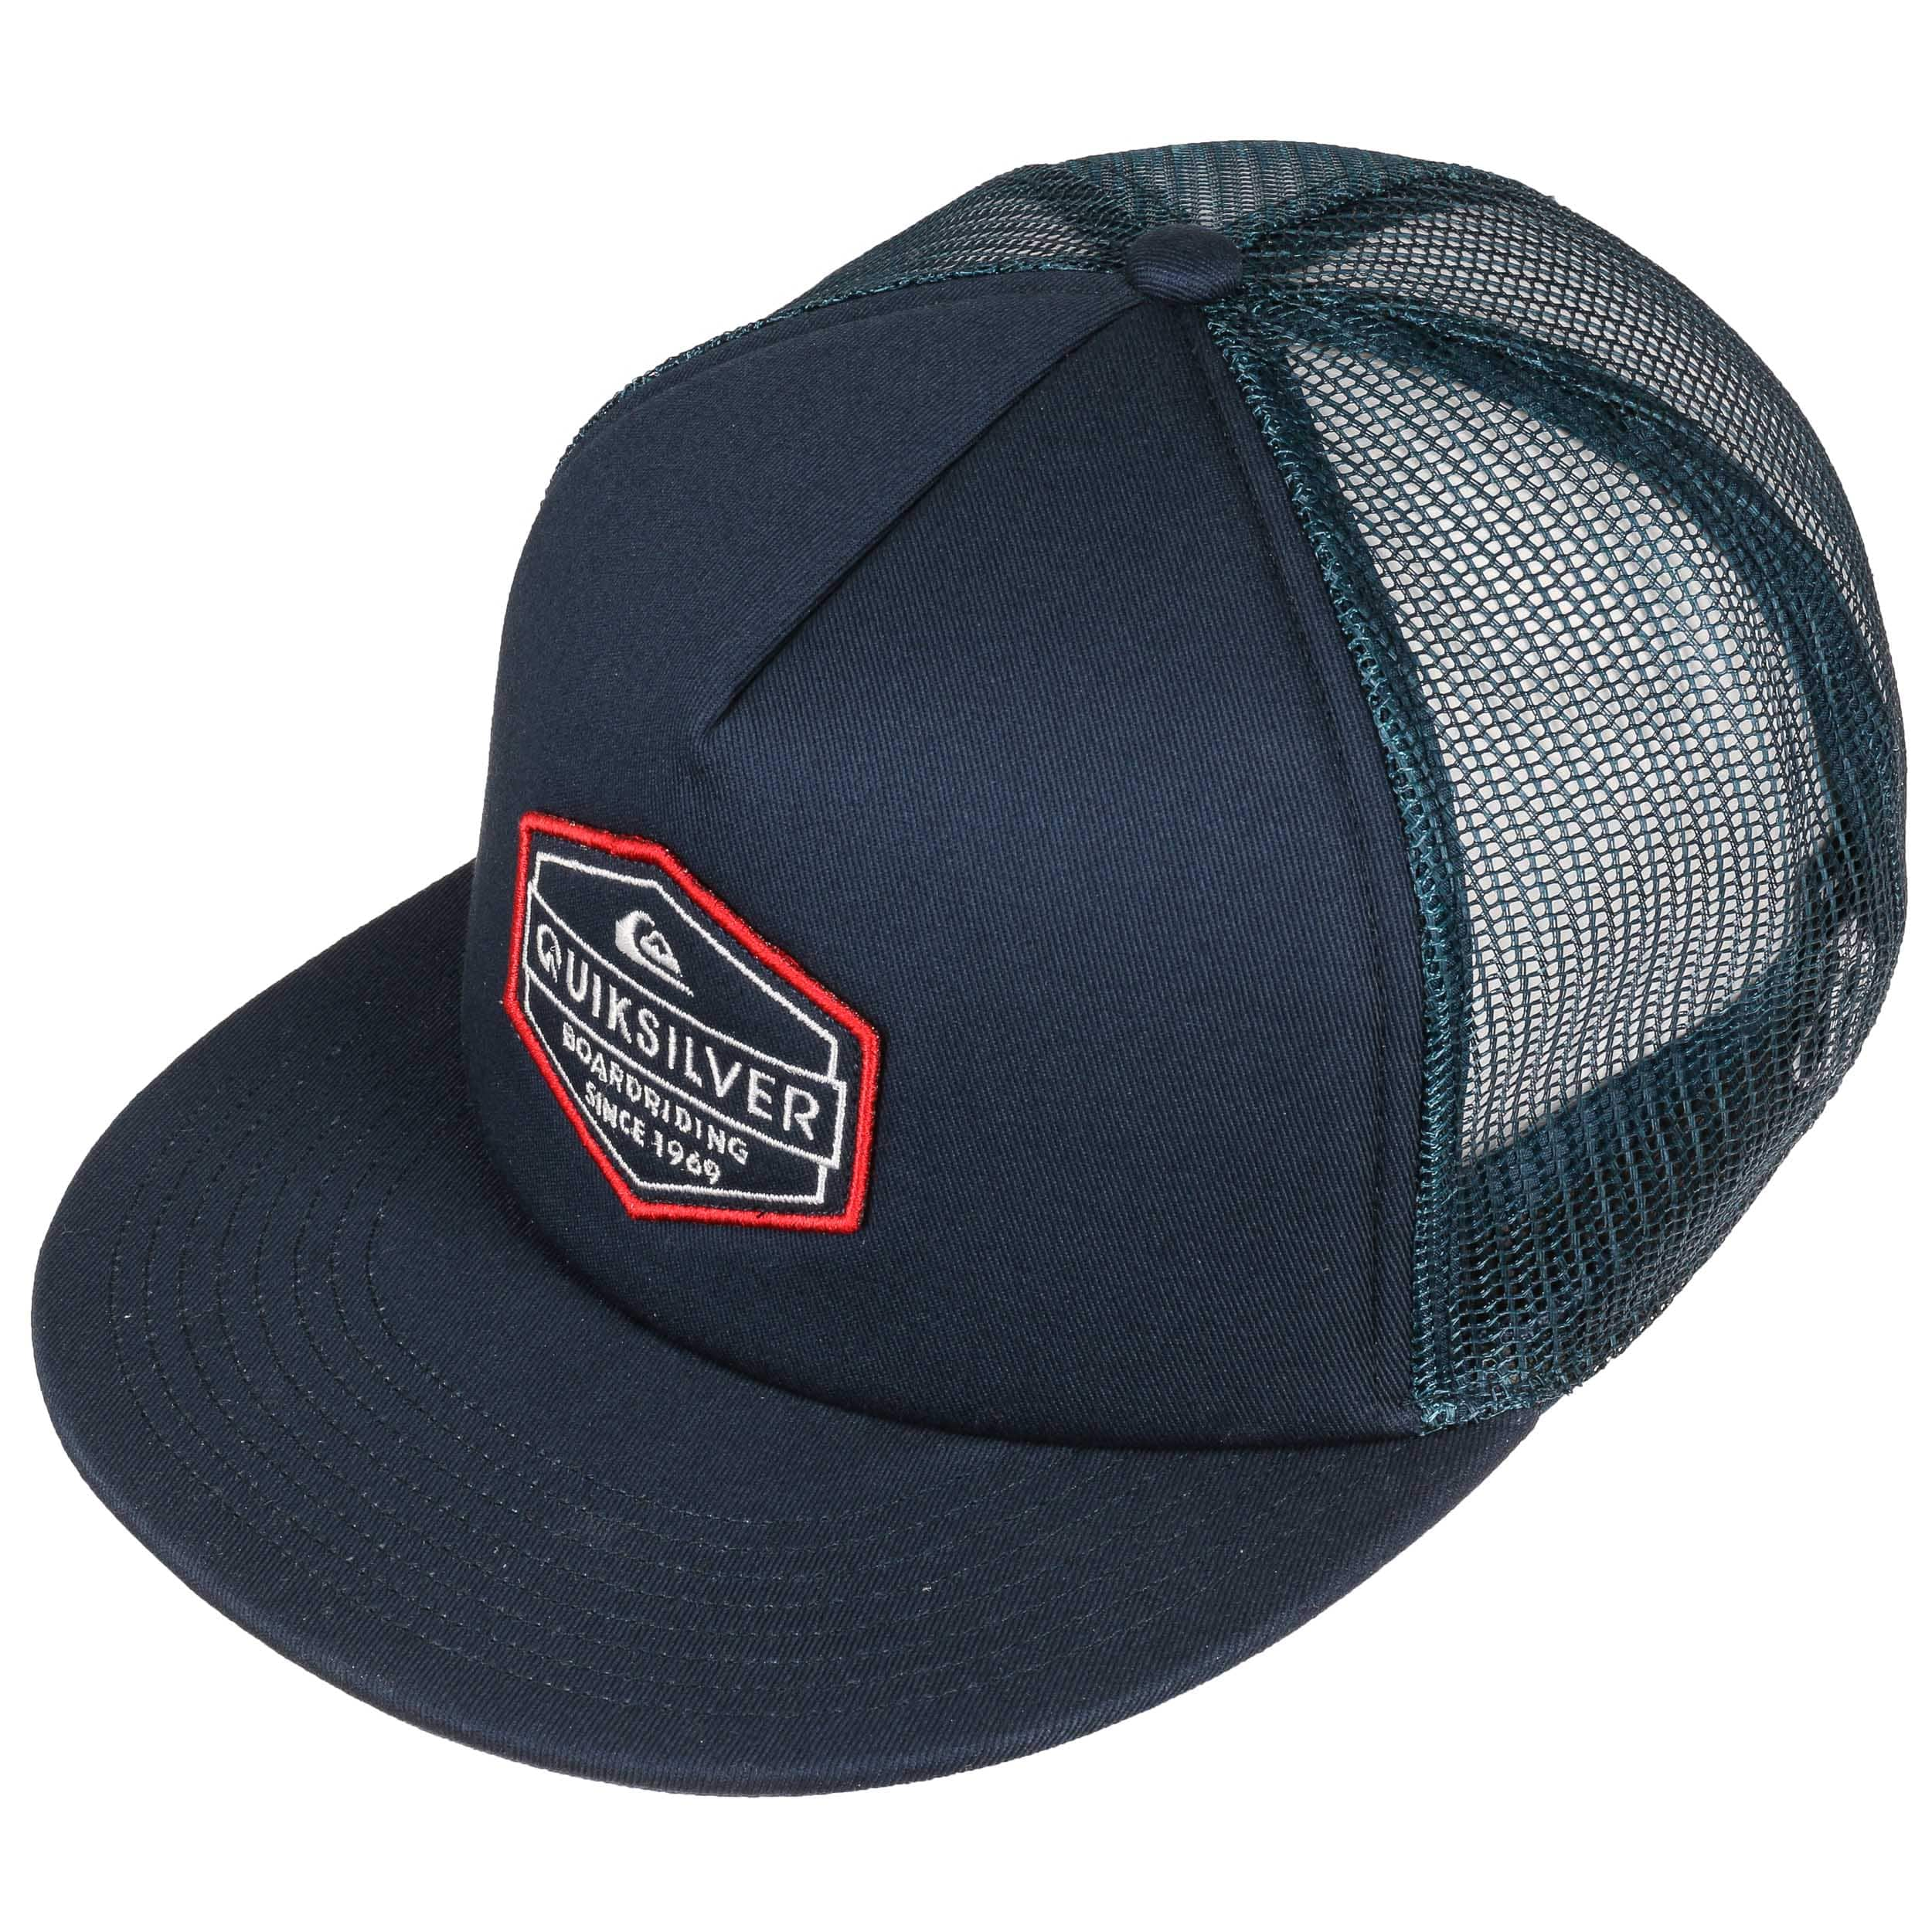 815a517a8ae ... reduced marbleson trucker cap by quiksilver navy 1 d3c9c fa473